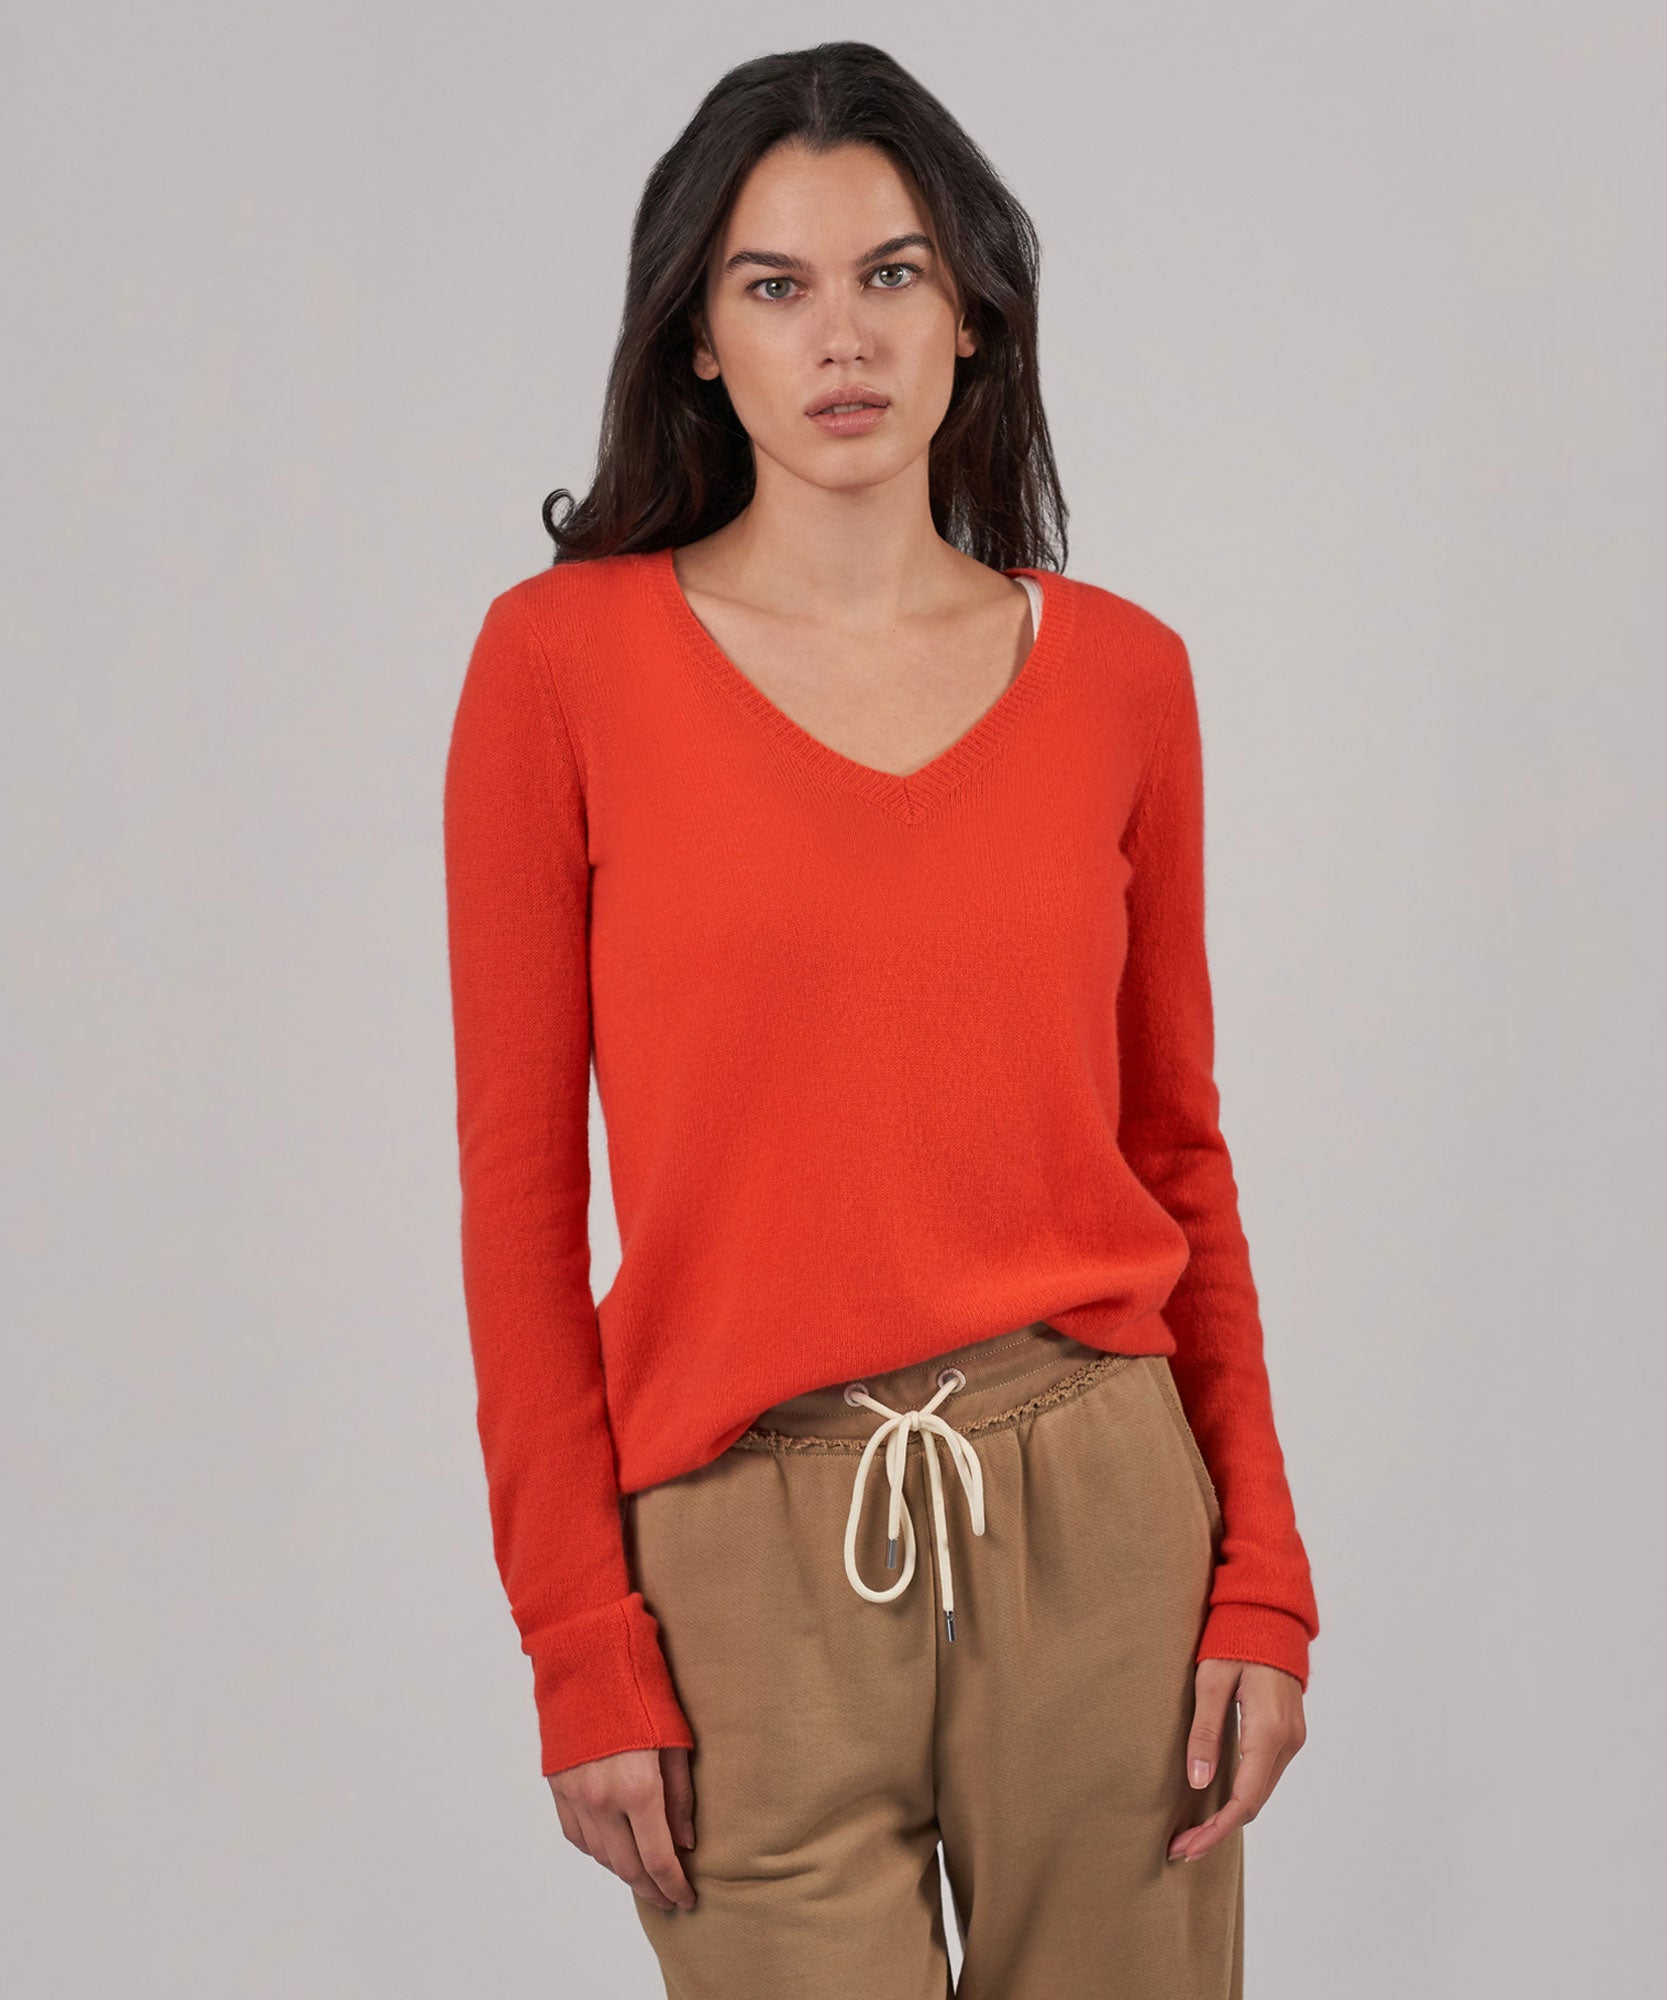 Deep Coral Cashmere V-Neck Sweater - Women's Luxe Sweater by ATM Anthony Thomas Melillo